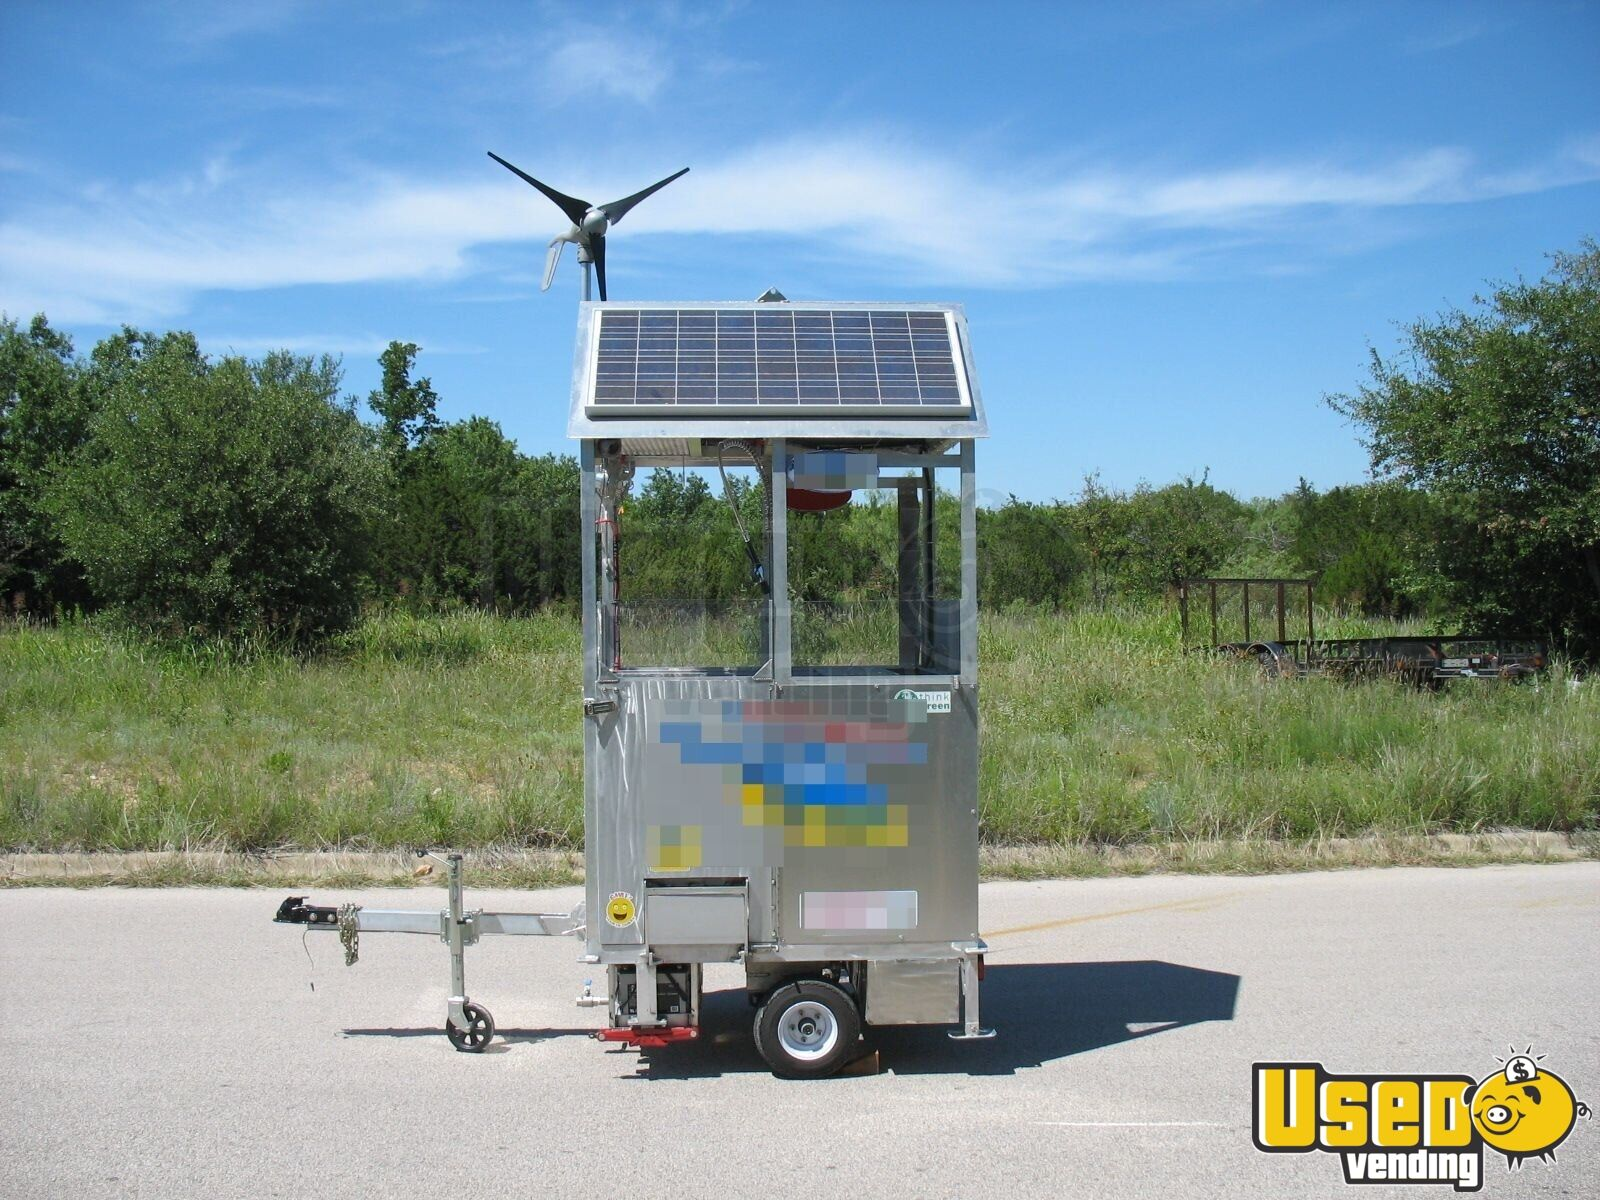 2009 Top Gun Top Dog Self Sufficient Mobile, Model Slt Food Cart 45 Texas for Sale - 45